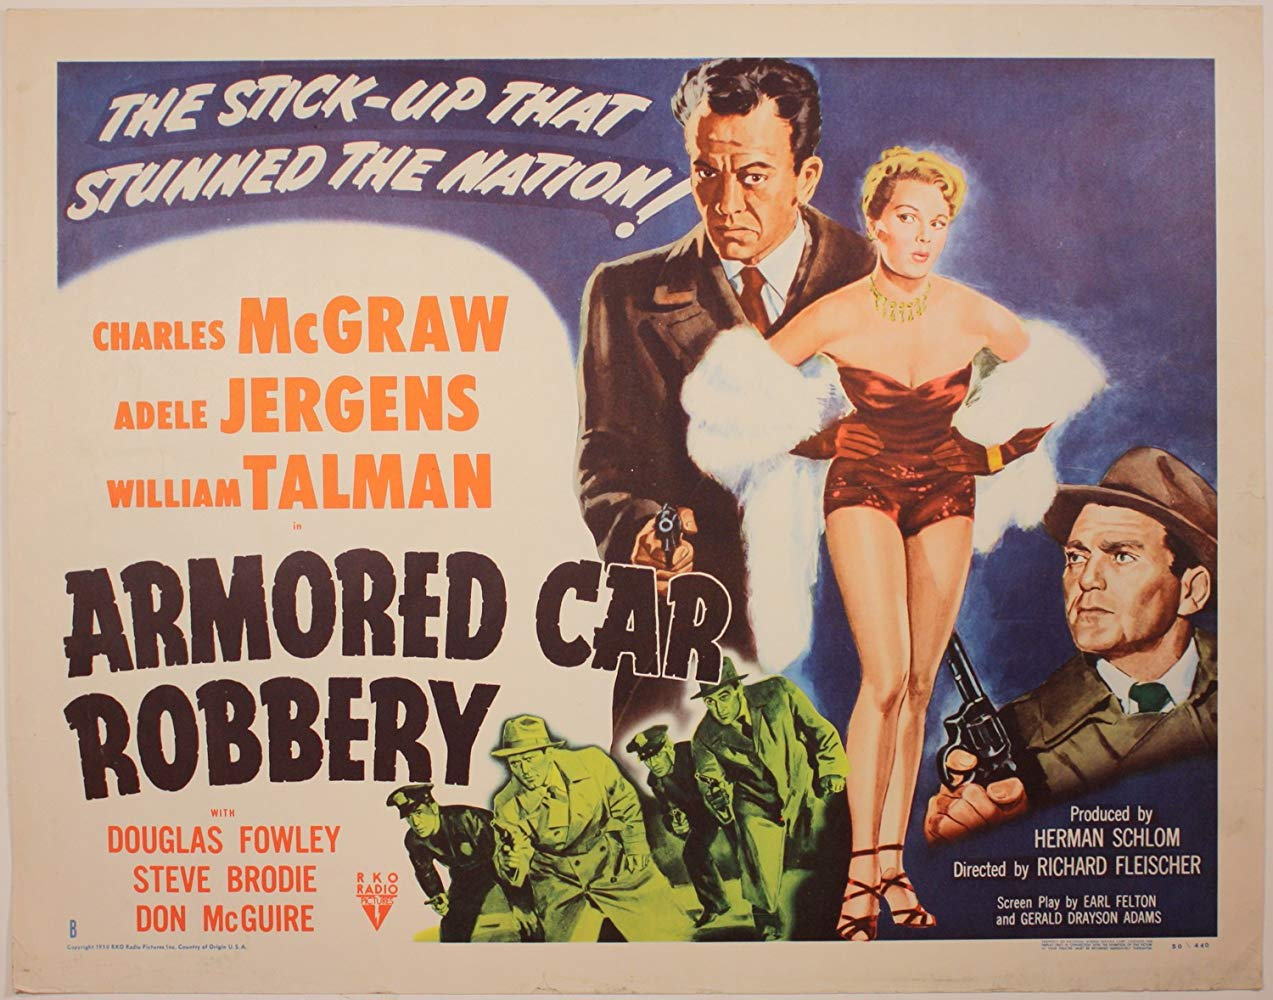 The colorful poster for Armored Car Robbery.